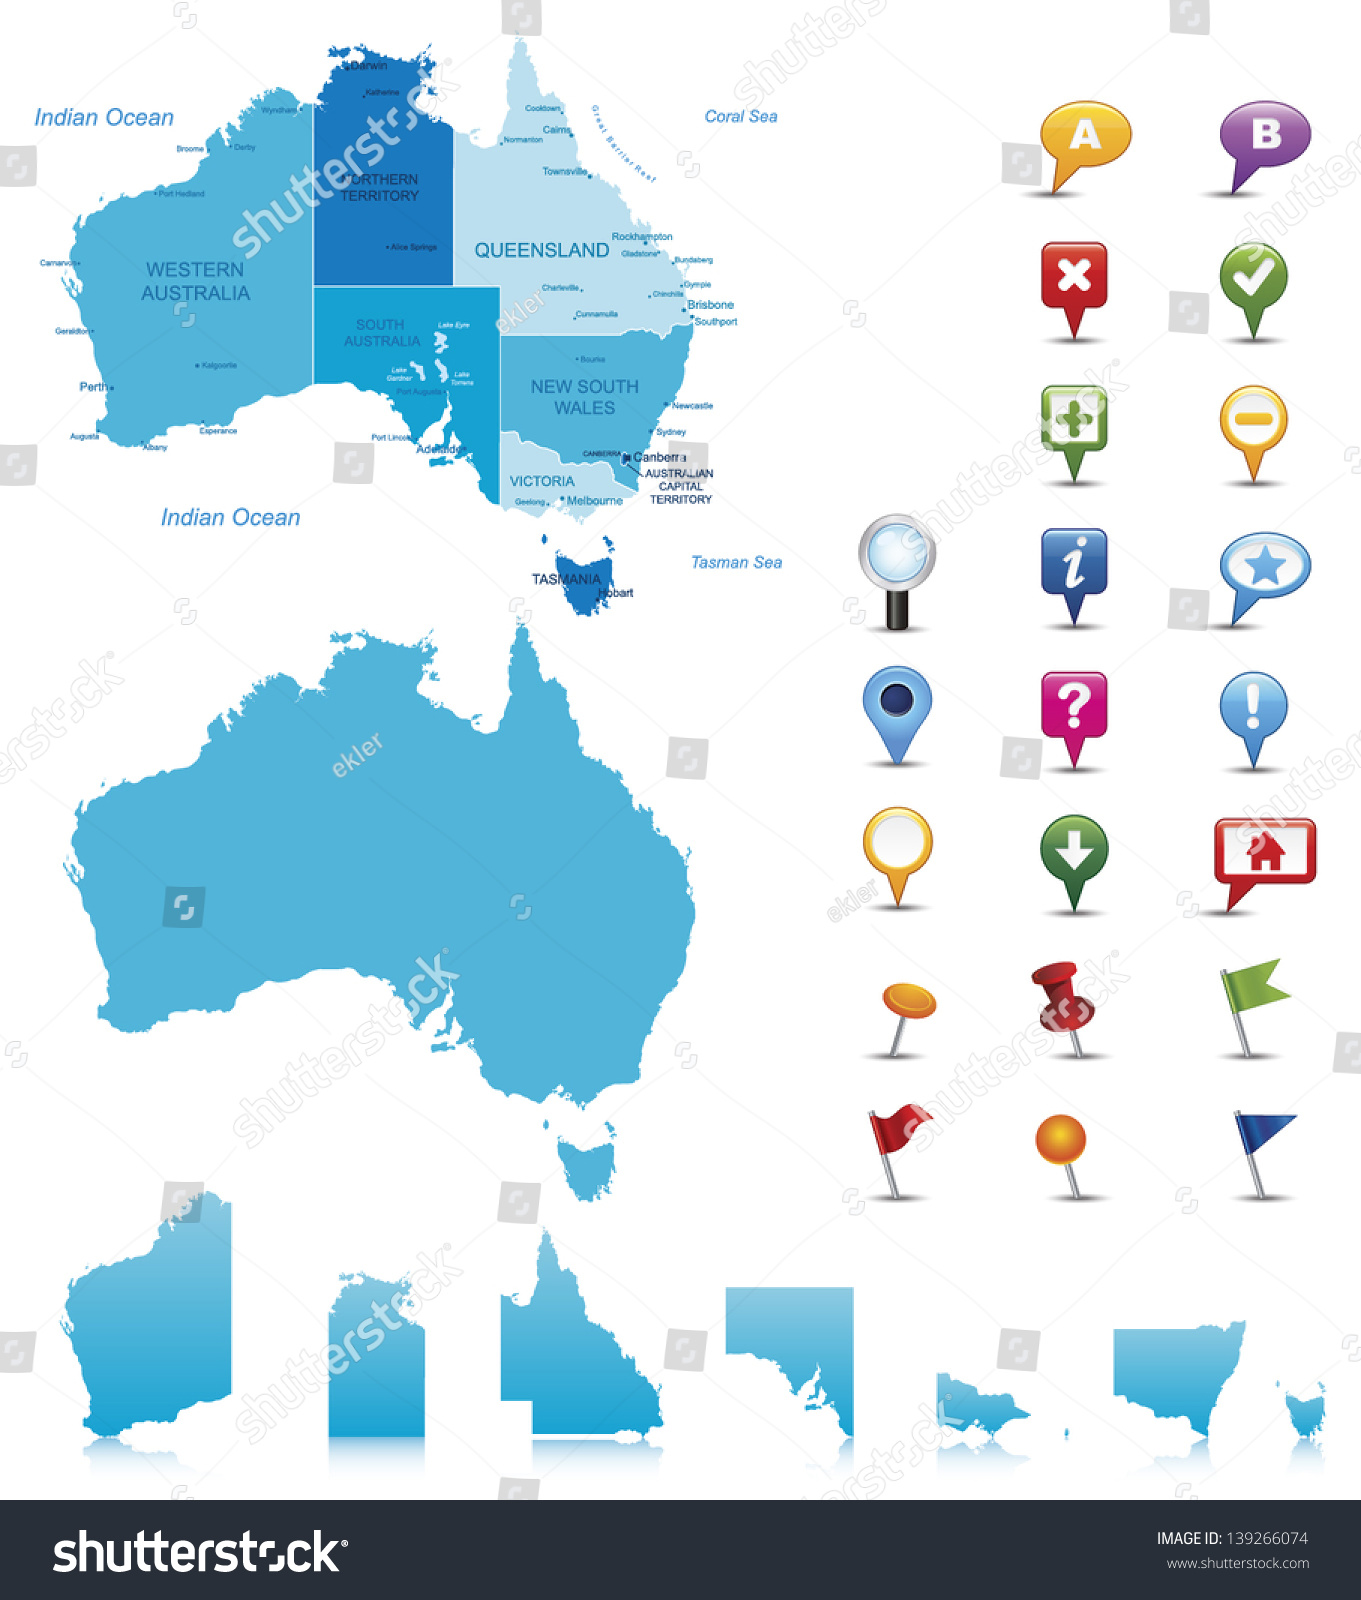 Detailed Map Australia.Australiahighly Detailed Map Elements Separated Editable Stock